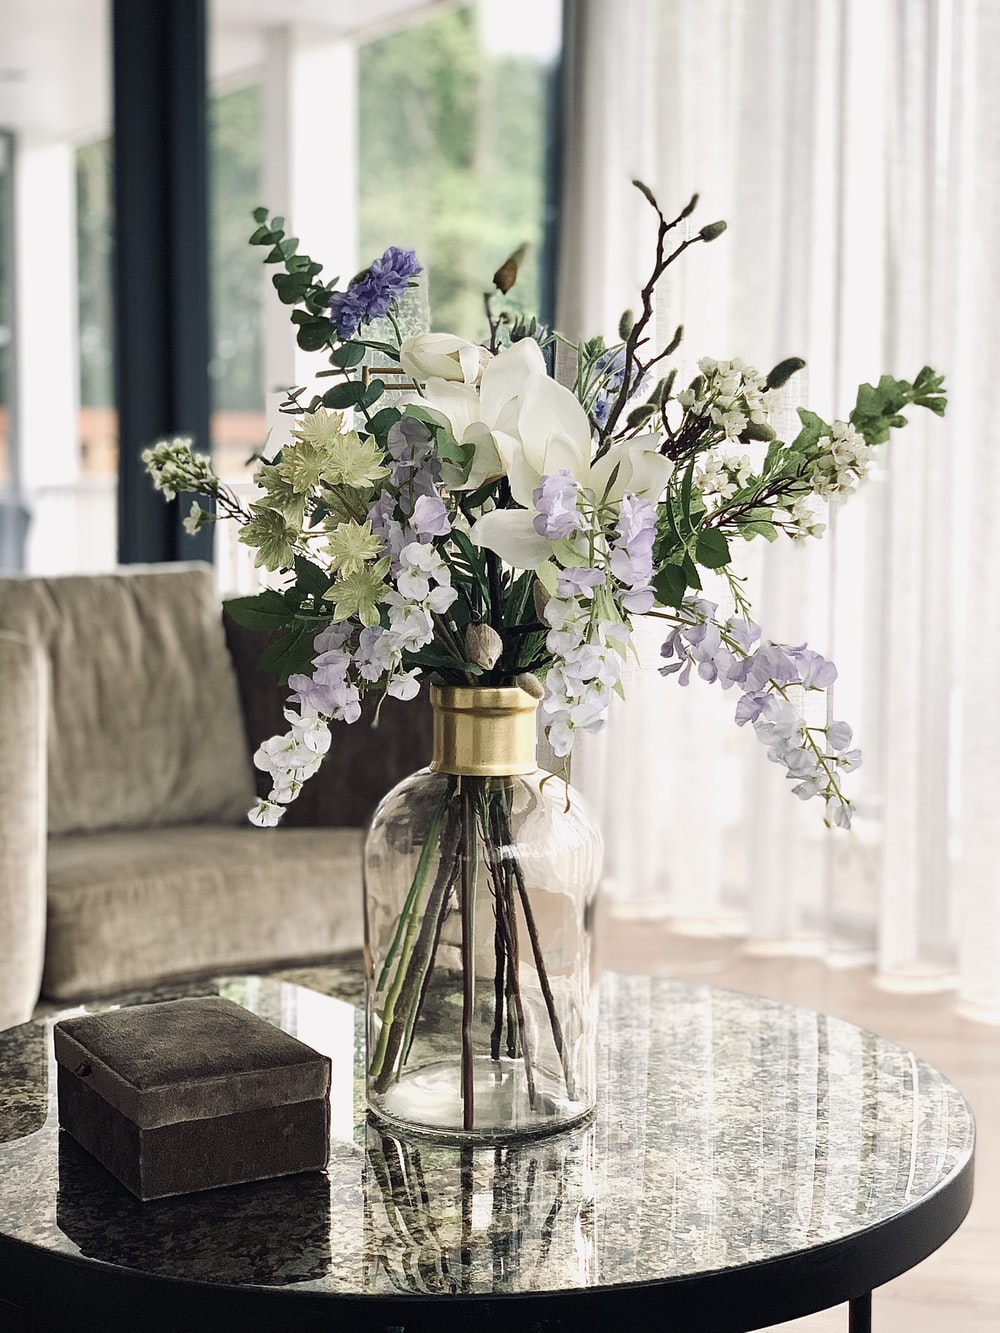 purple flowers in clear glass vase on gray couch